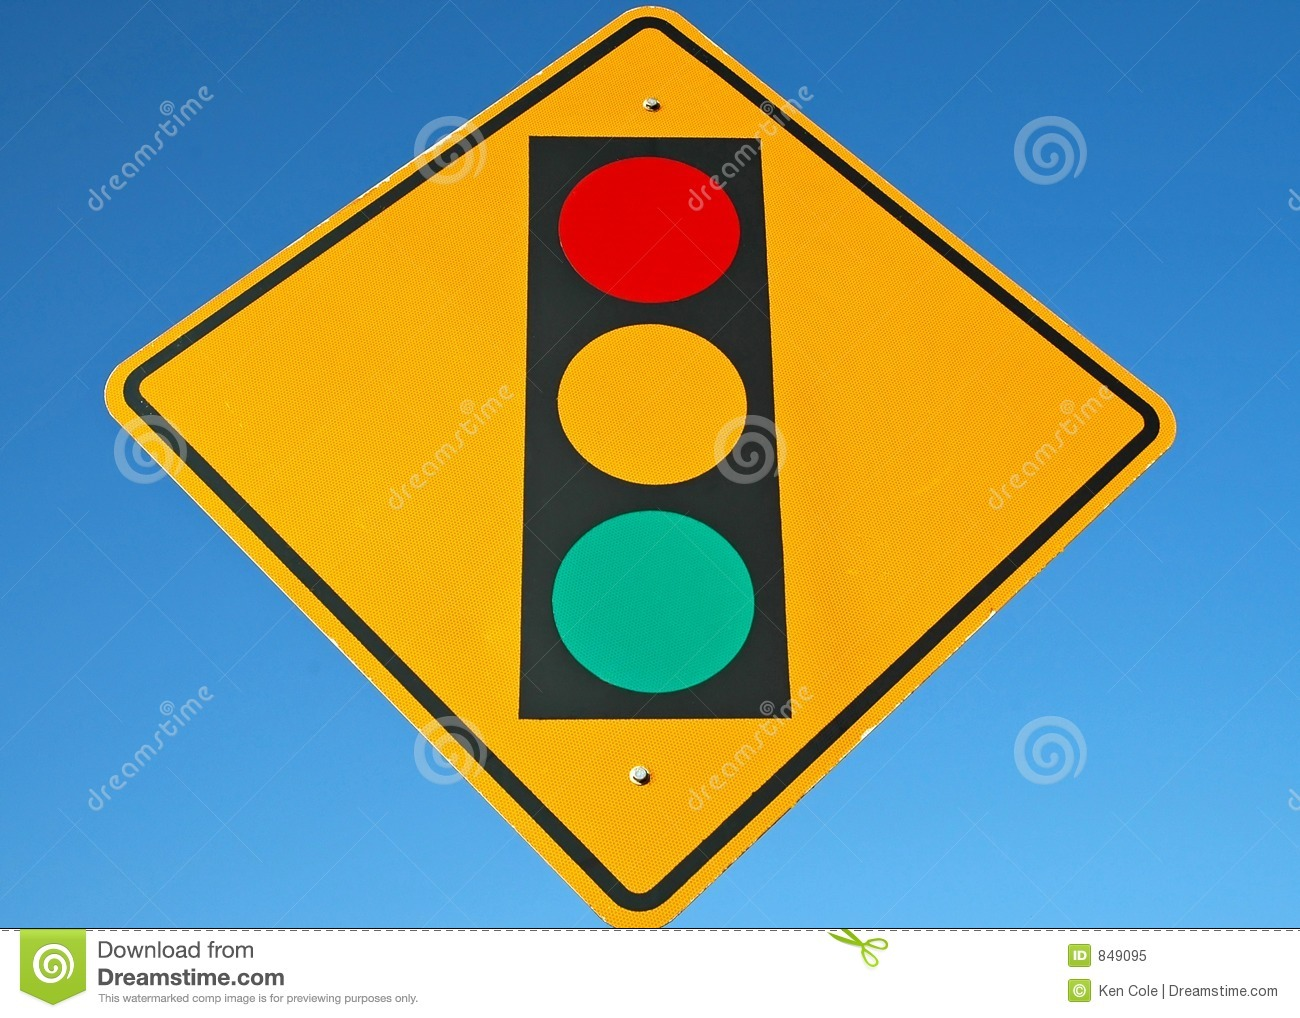 Street Sign - Traffic Light Ahead